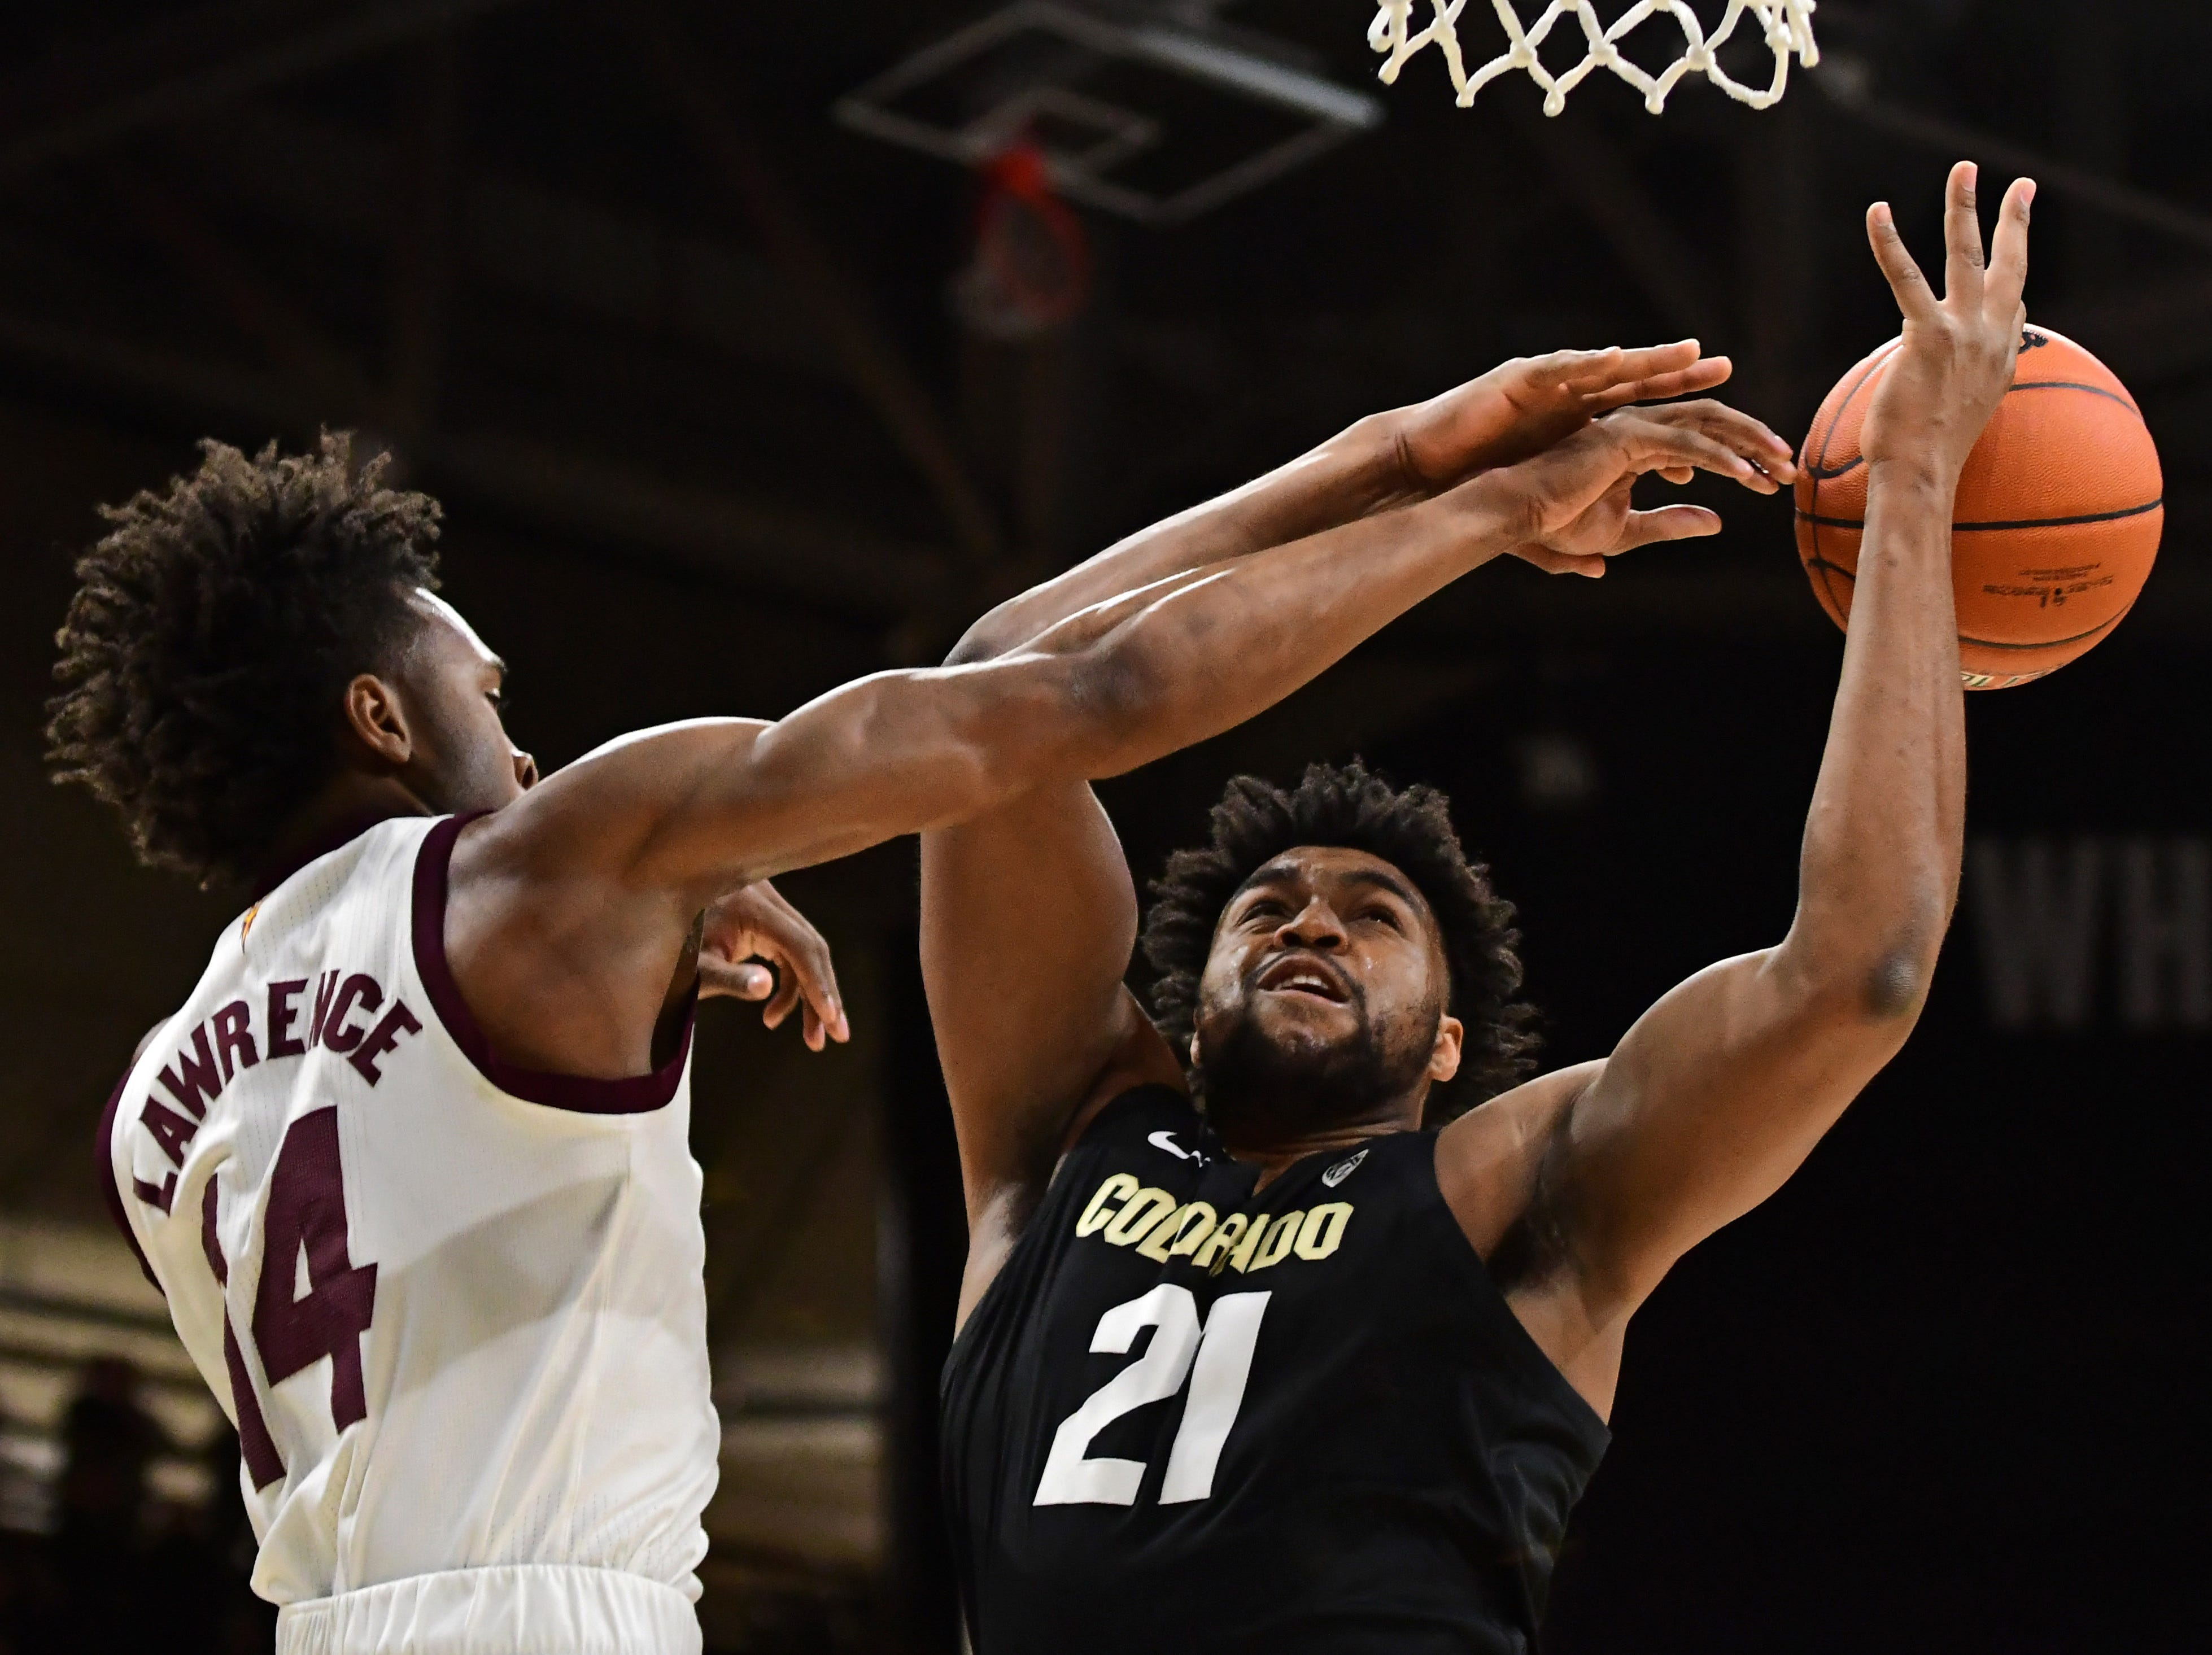 Feb 13, 2019; Boulder, CO, USA; Arizona State Sun Devils forward Kimani Lawrence (14) blocks a shot attempt by Colorado Buffaloes forward Evan Battey (21) n the first half at the CU Events Center. Mandatory Credit: Ron Chenoy-USA TODAY Sports